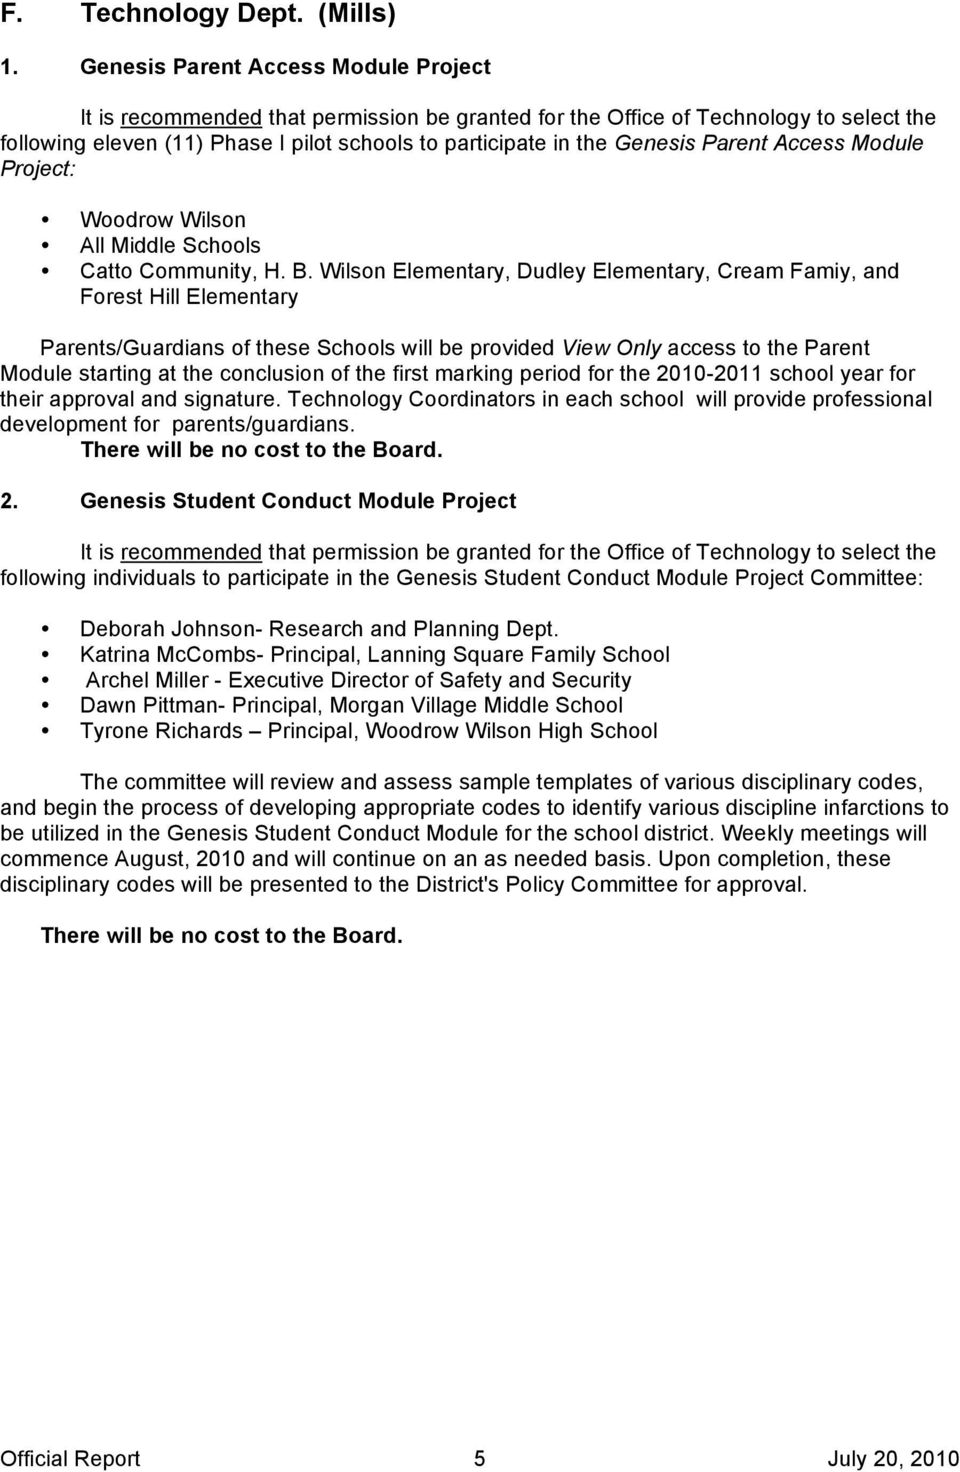 Parent Access Module Project: Woodrow Wilson All Middle Schools Catto Community, H. B.